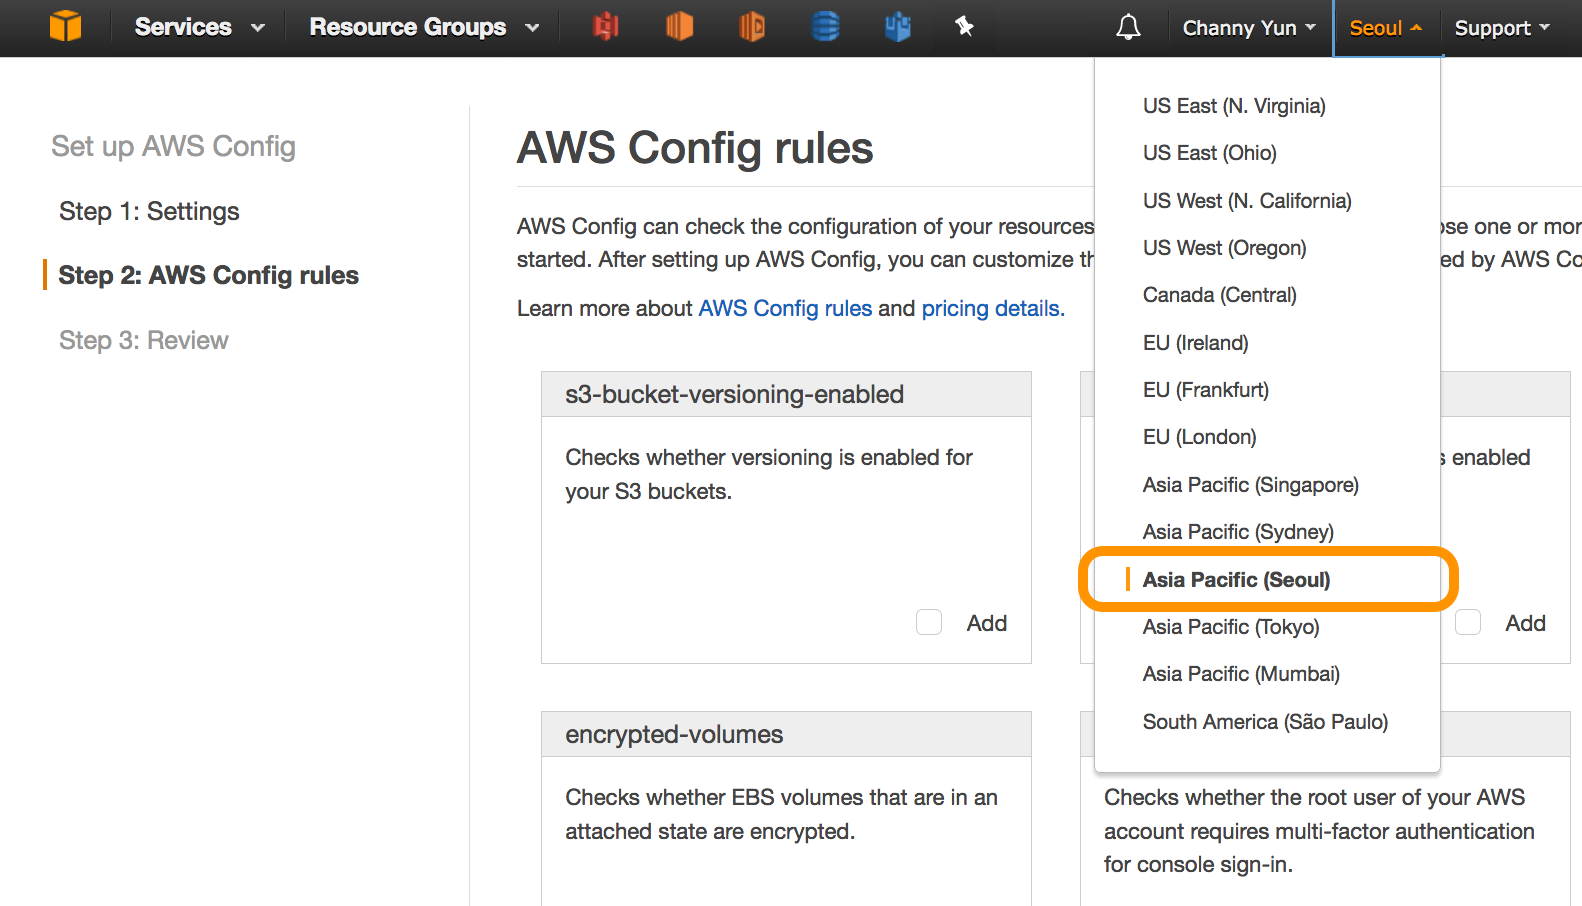 2016-12-22-aws-config-rules-seoul